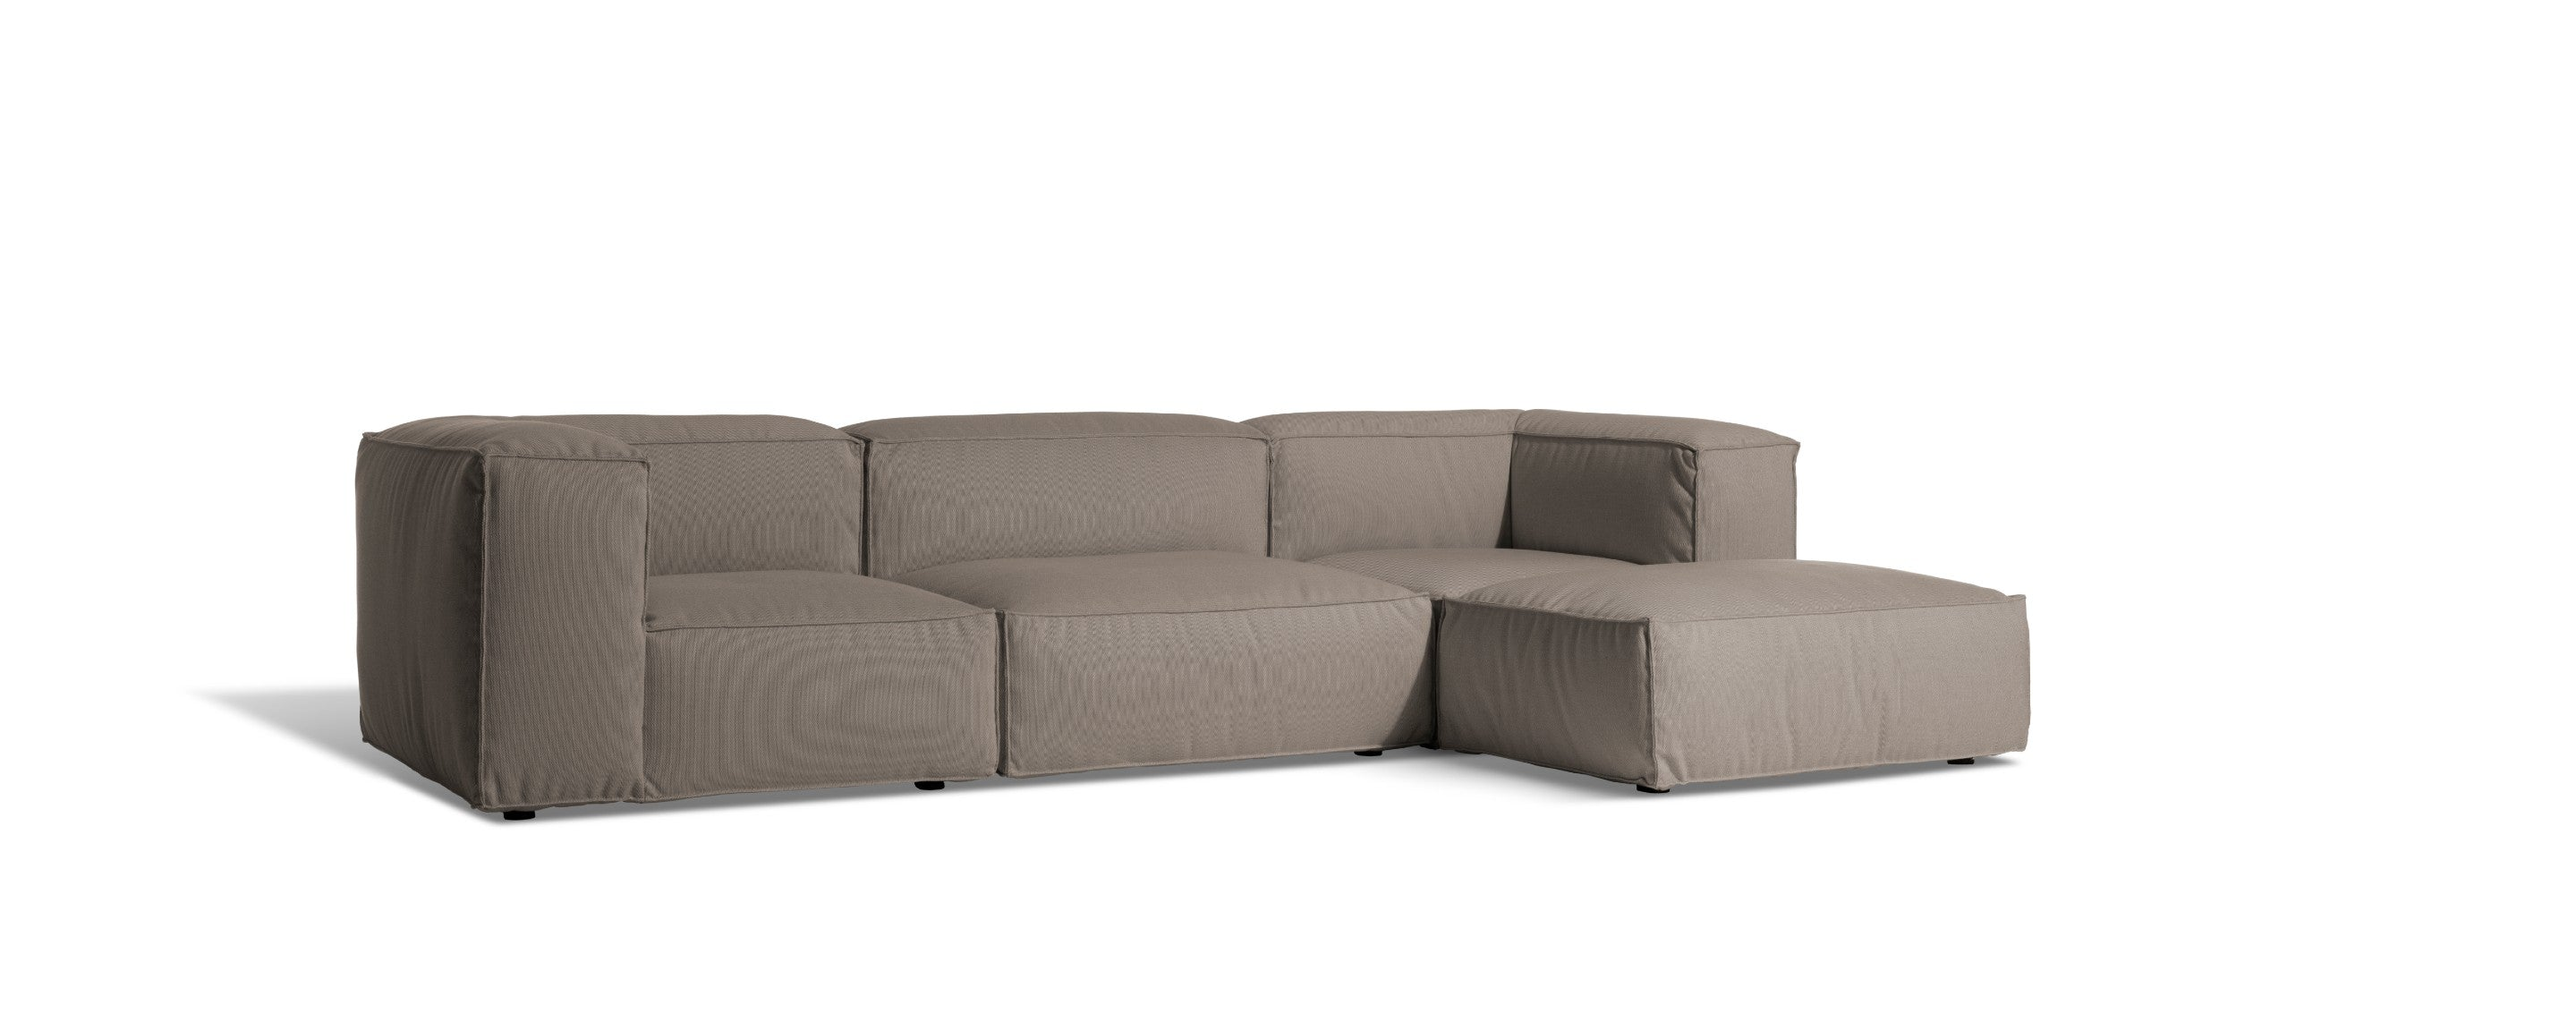 asker sectional sofa ottoman